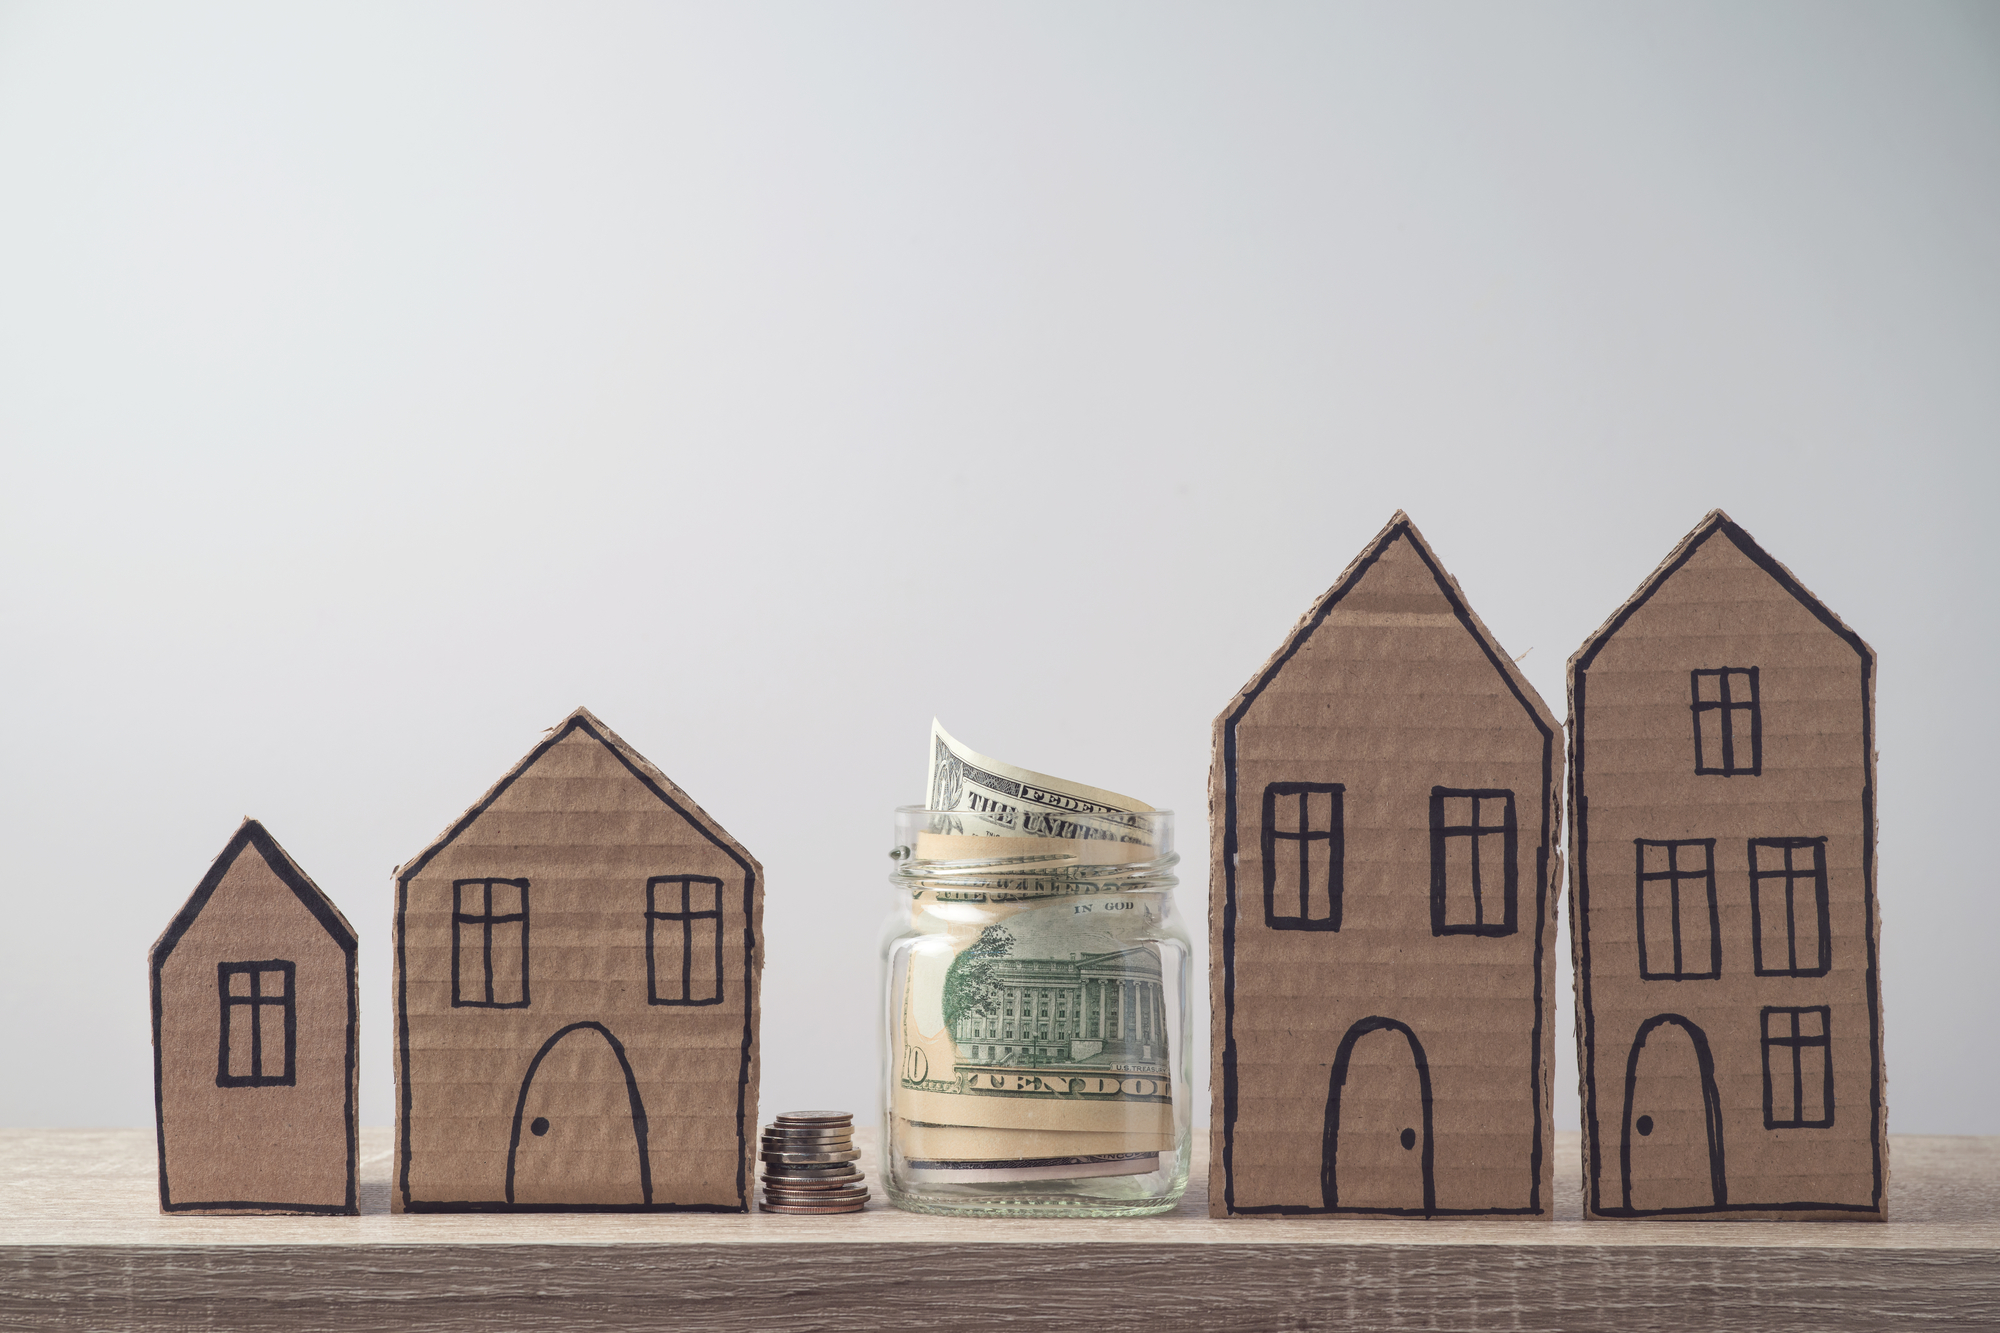 Property investment and house mortgage financial concept with money and cardboard houses